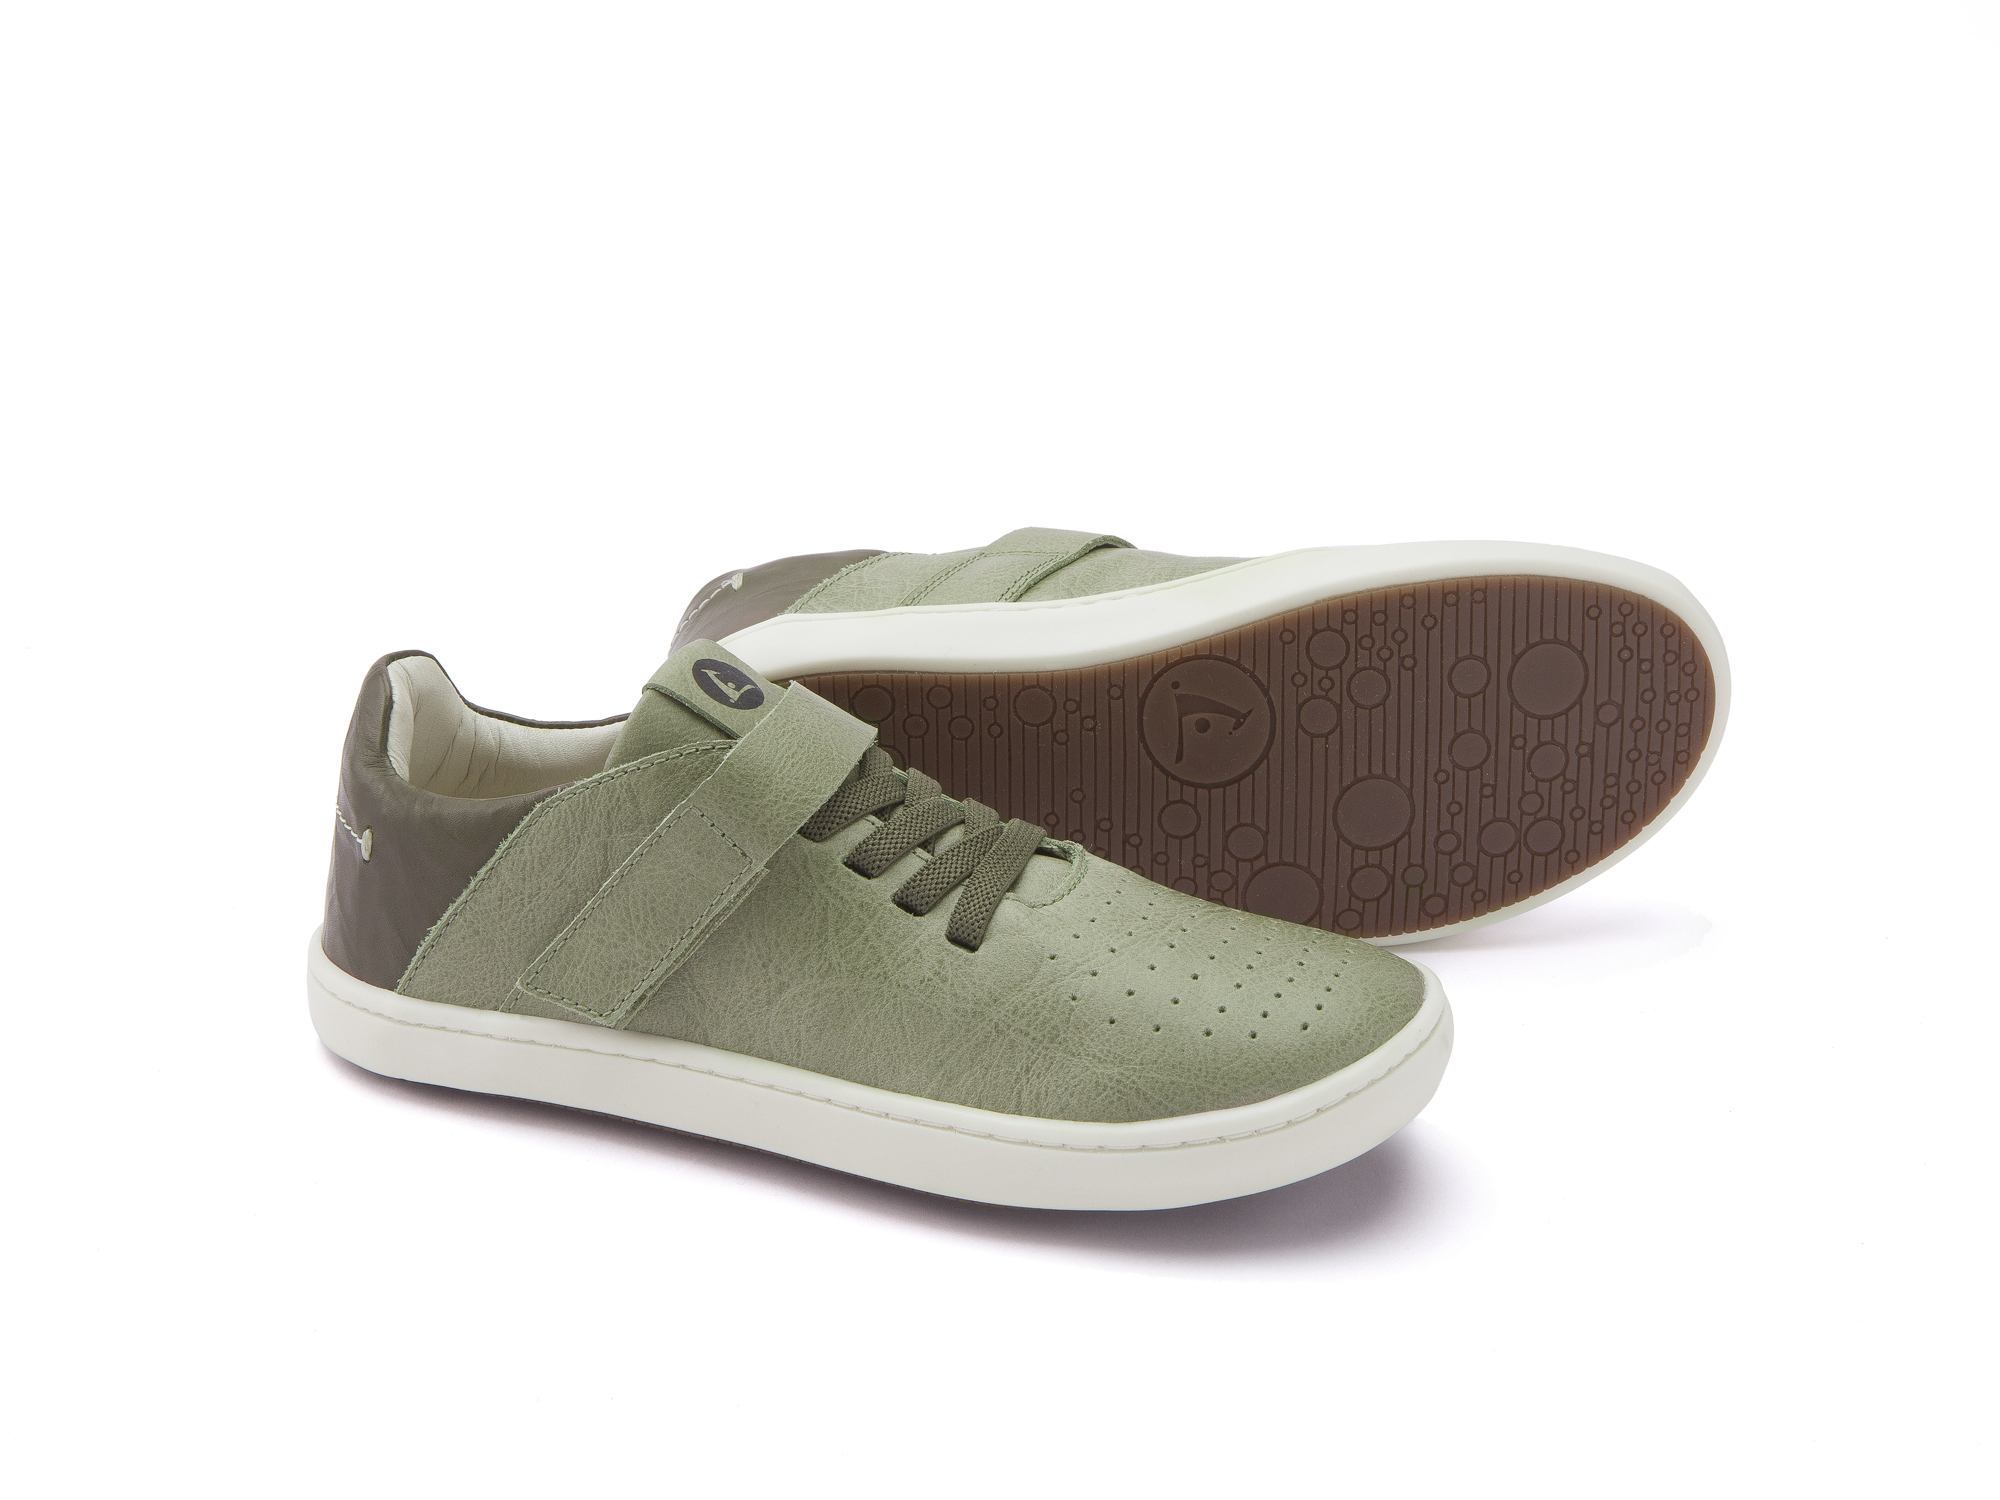 Tênis Slice Olive Brush/ Green Crush Junior 4 à 8 anos - 2